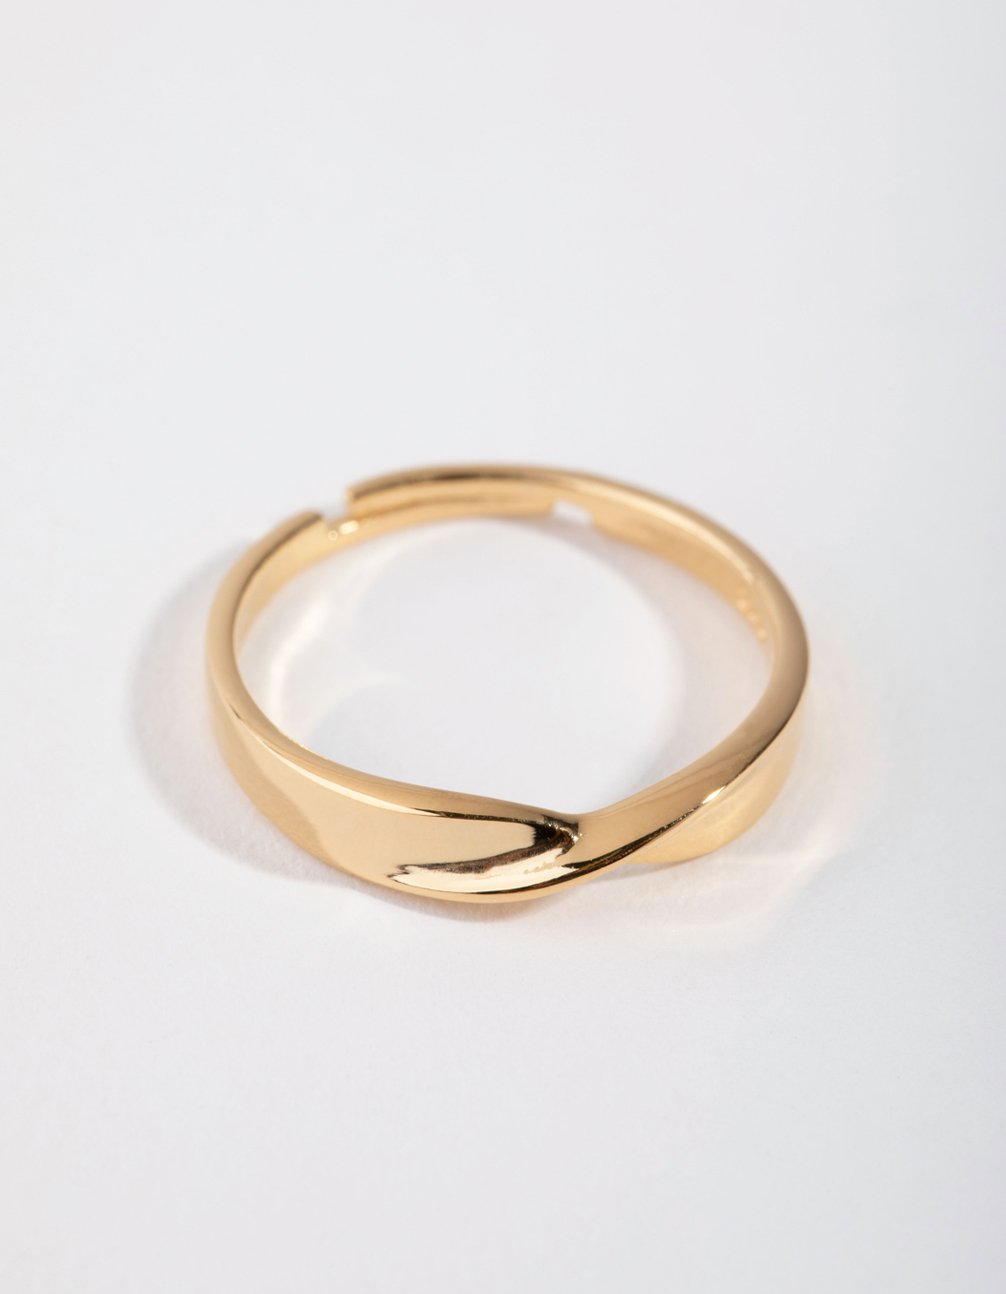 Gold-Plated Sterling Silver Statement Twist Band Ring